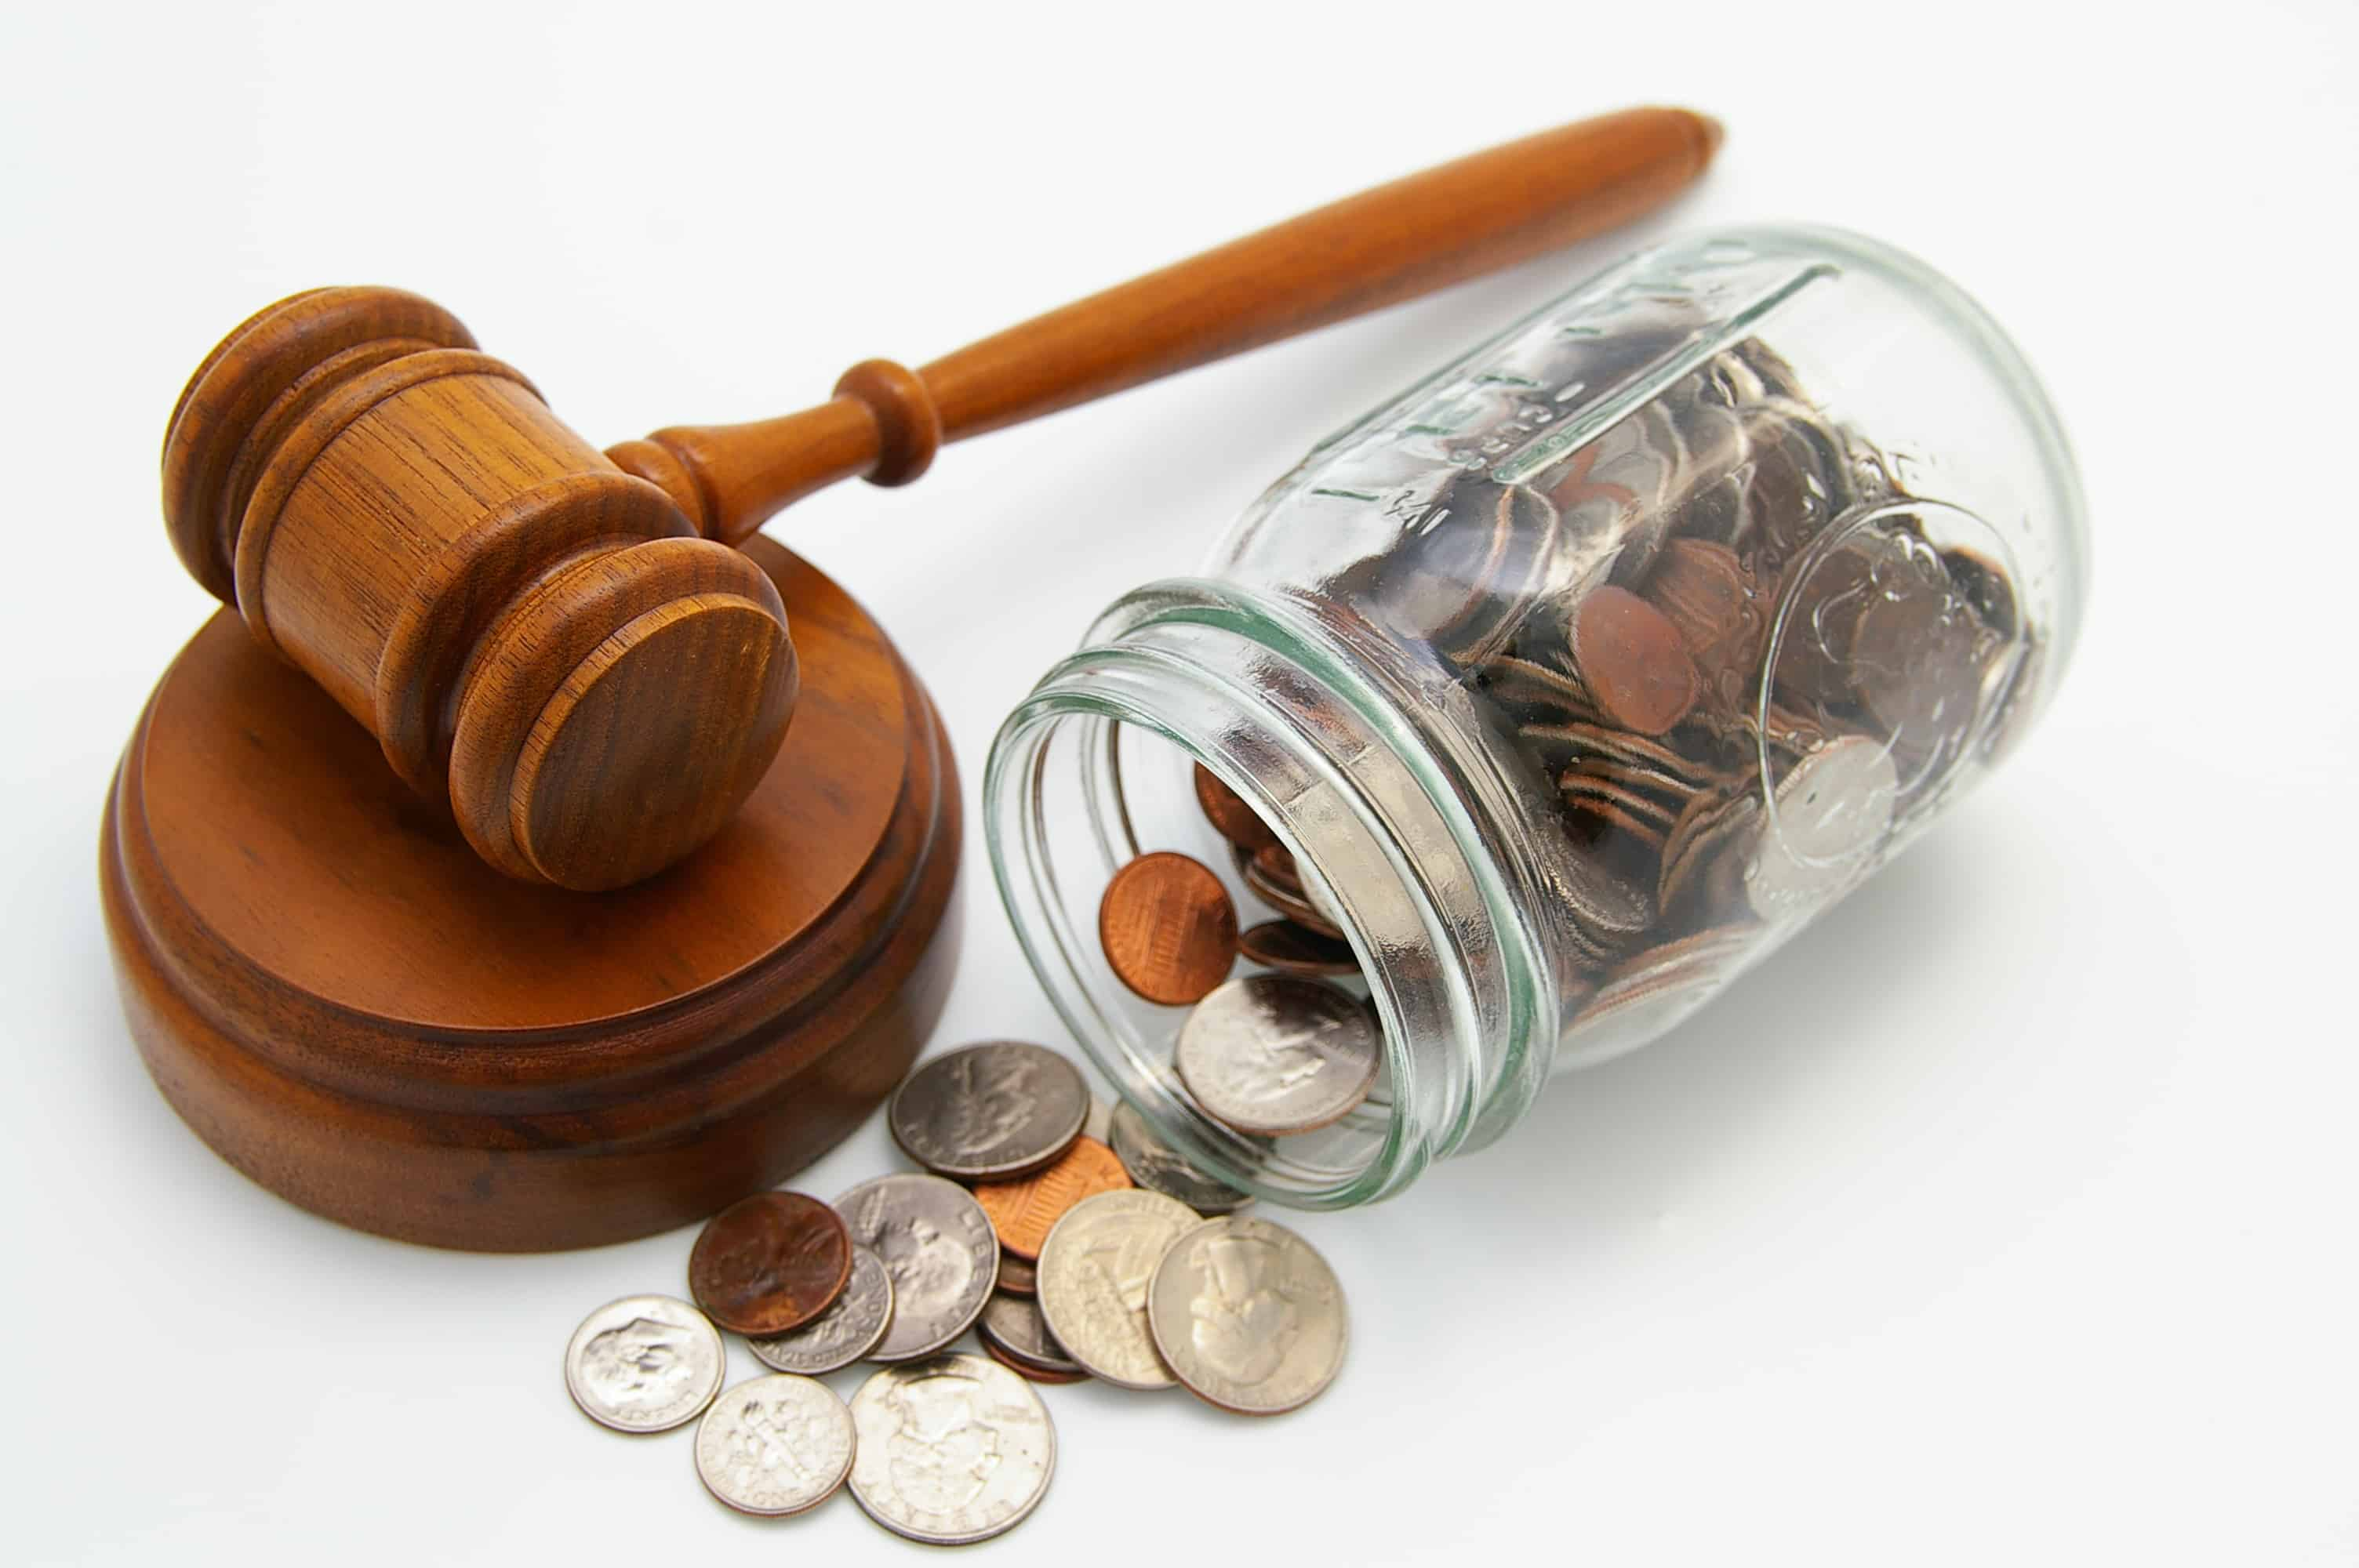 How much are attorney's fees